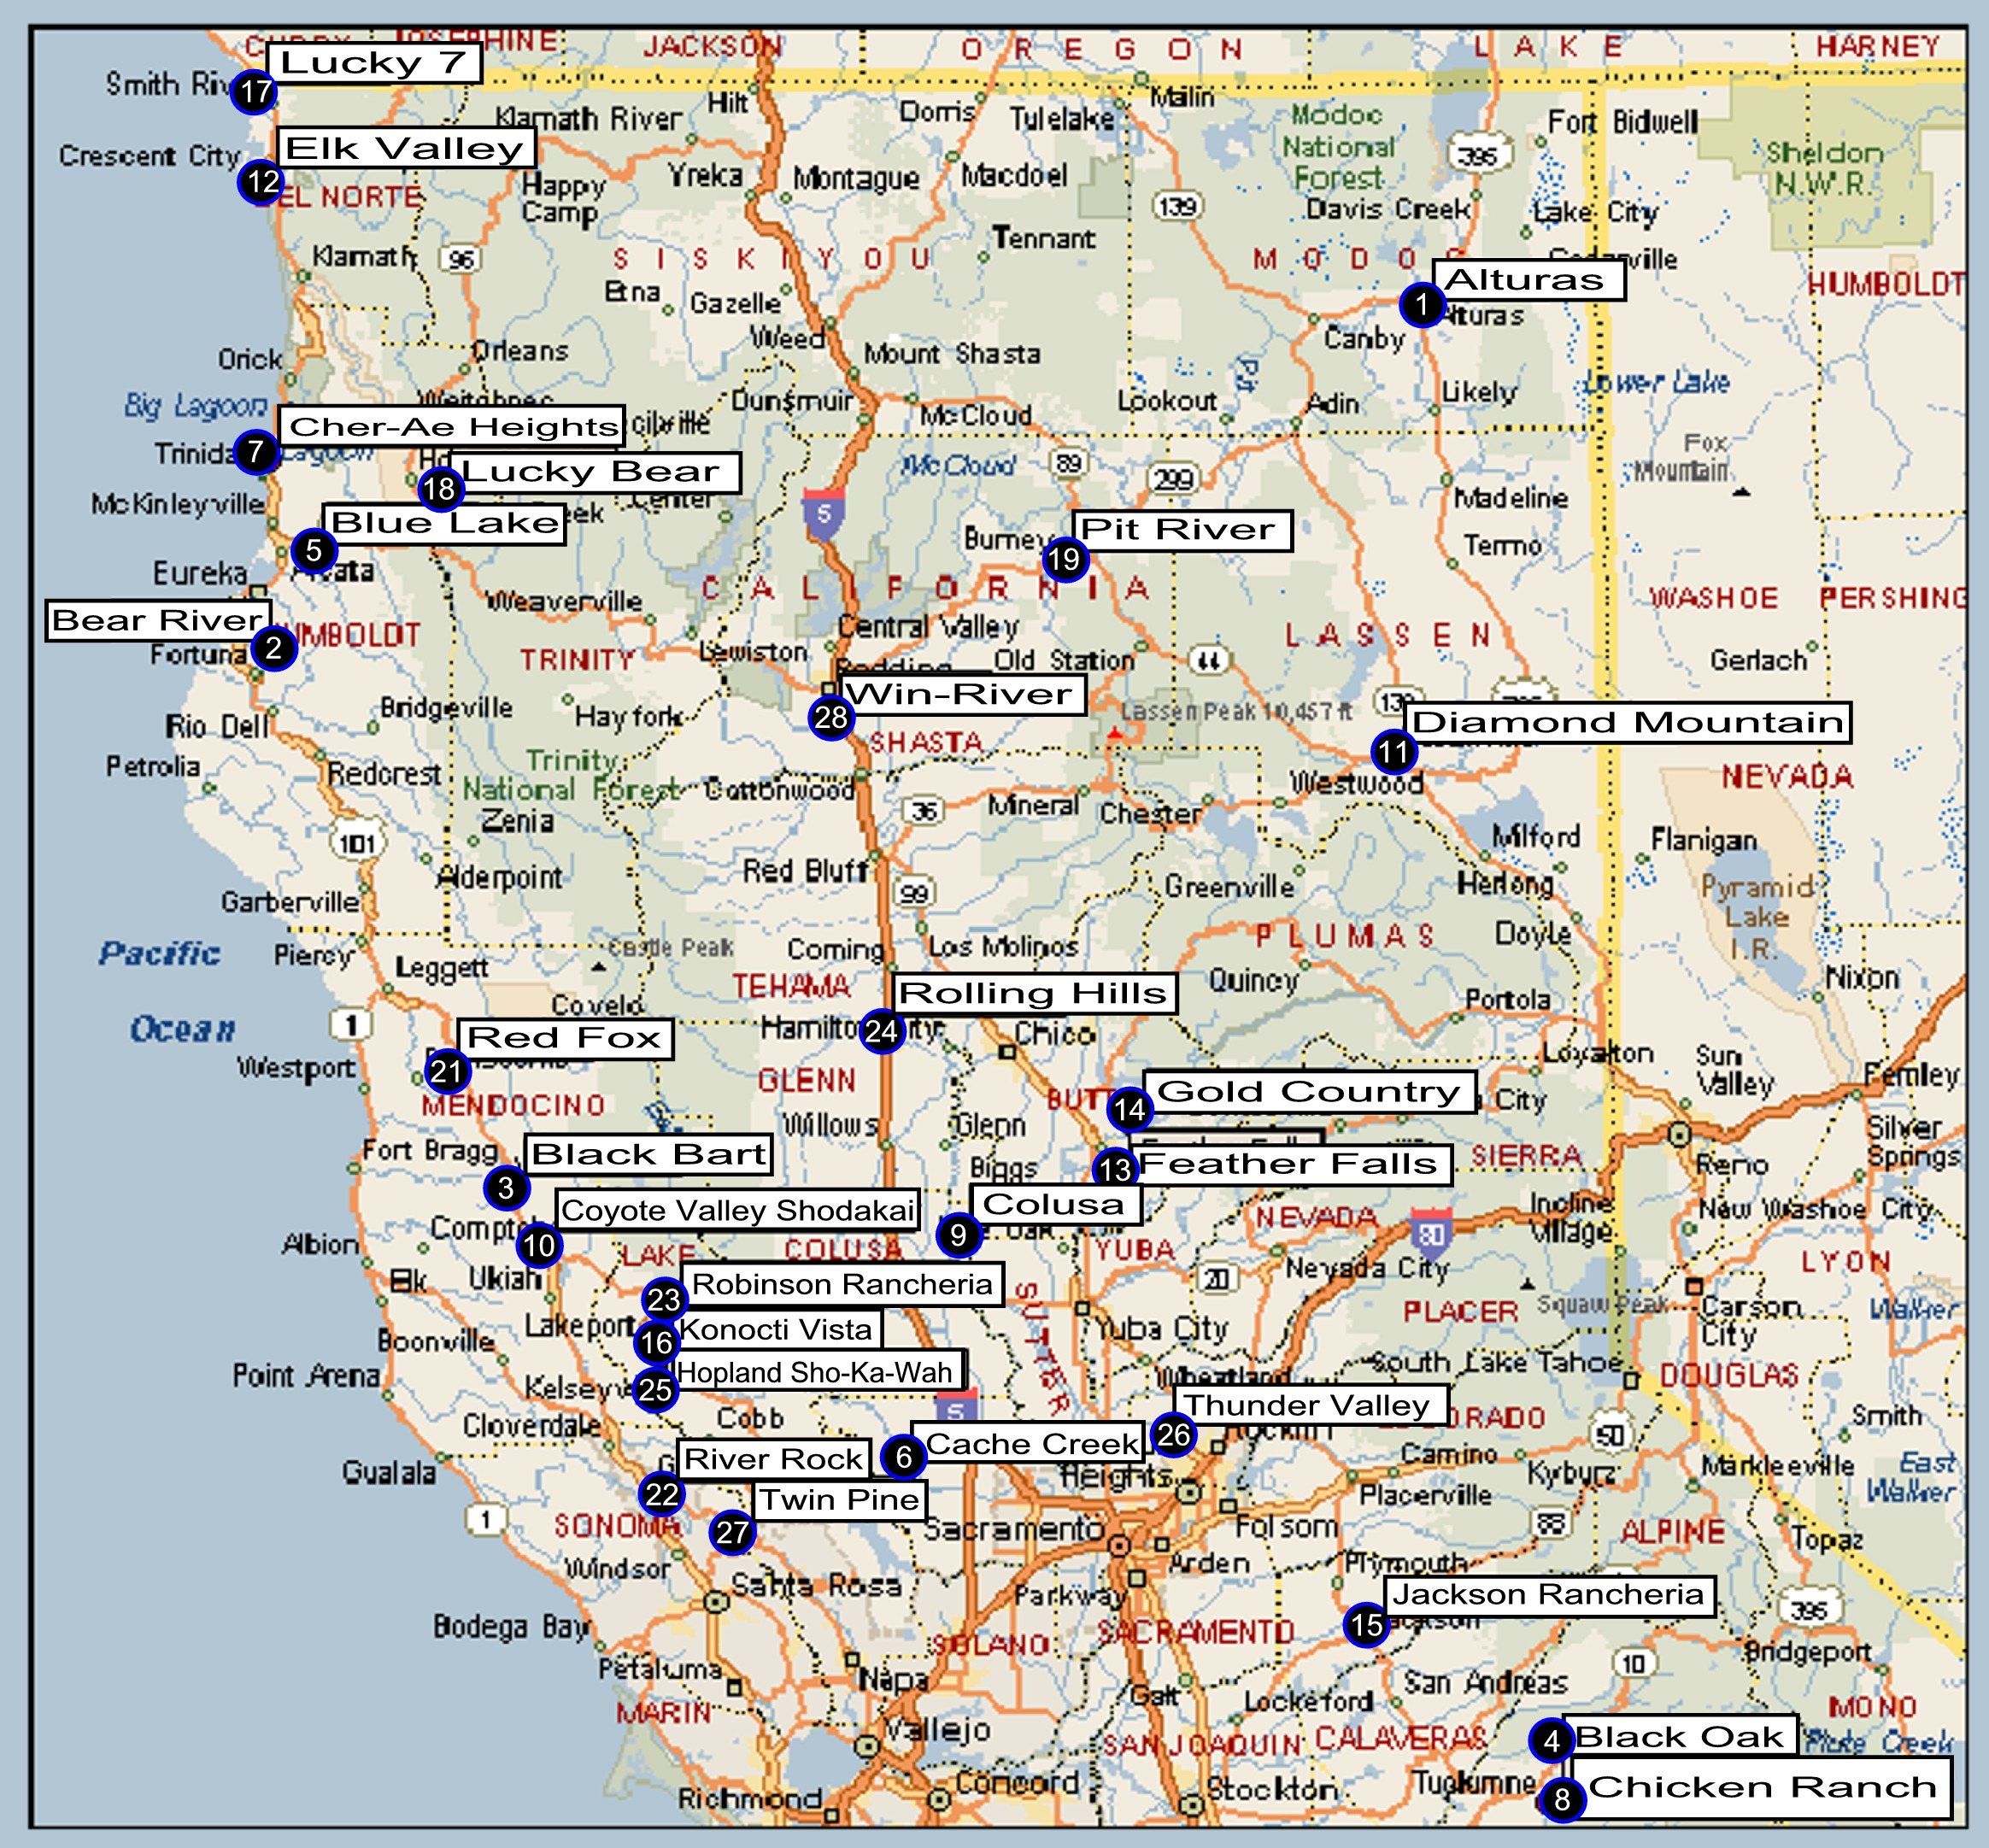 Norcal Map California River Map California Indian Casinos Map - Northern California Casinos Map